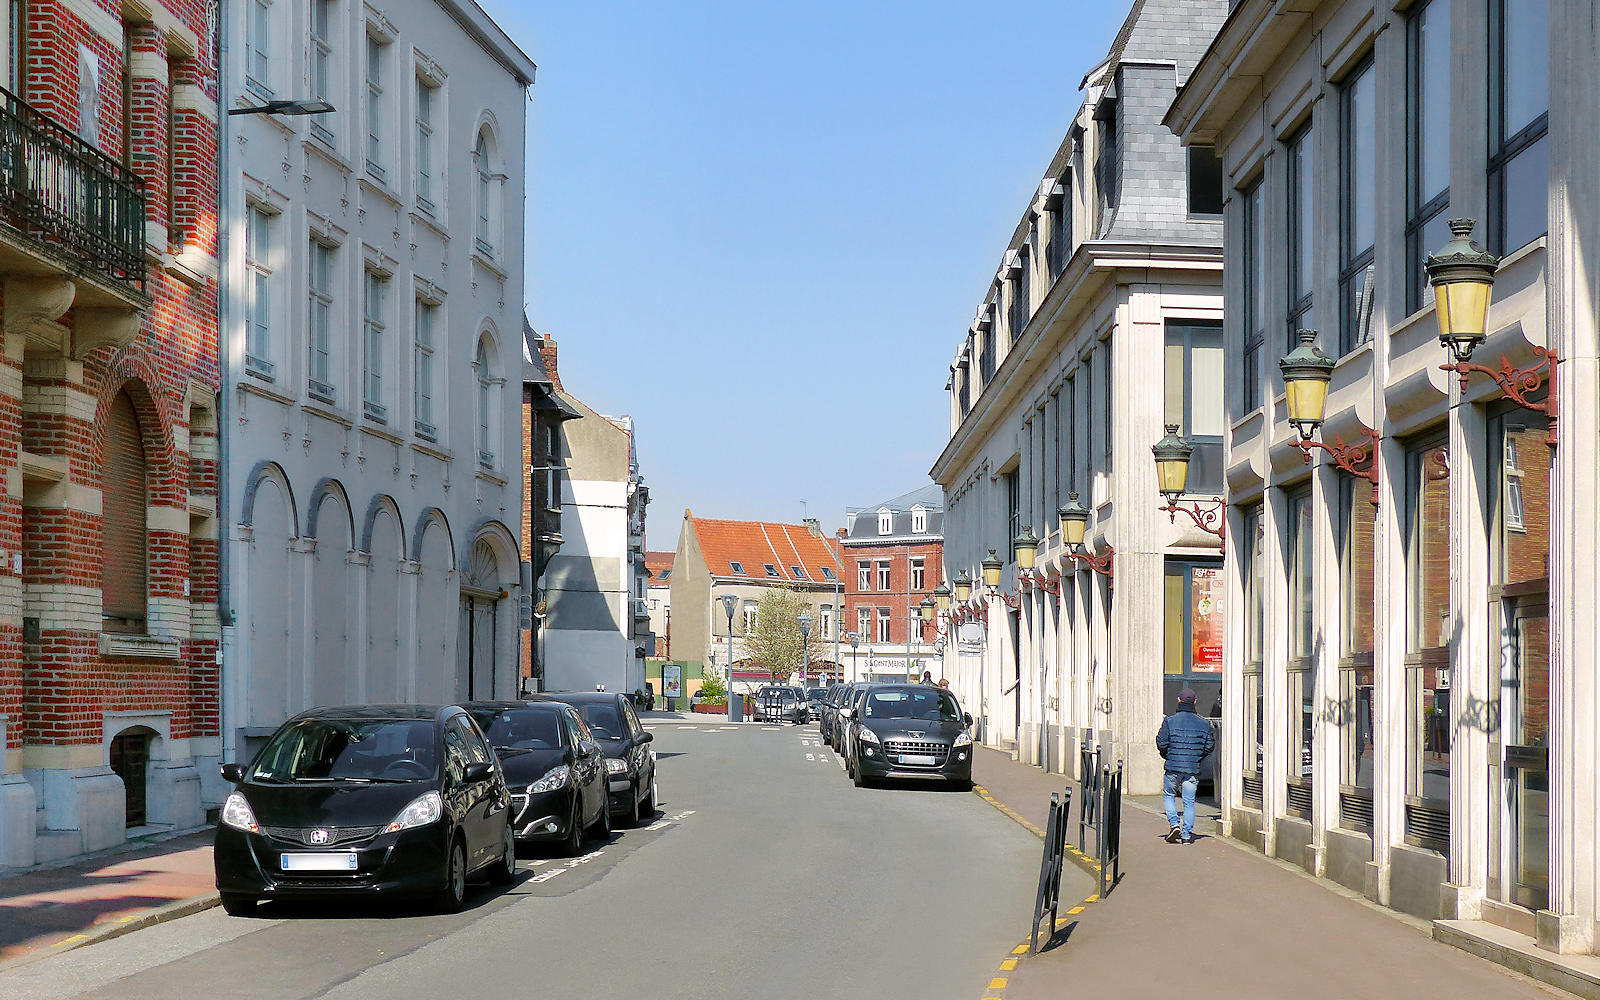 Rues Tourcoing - Rue des Ursulines, Tourcoing